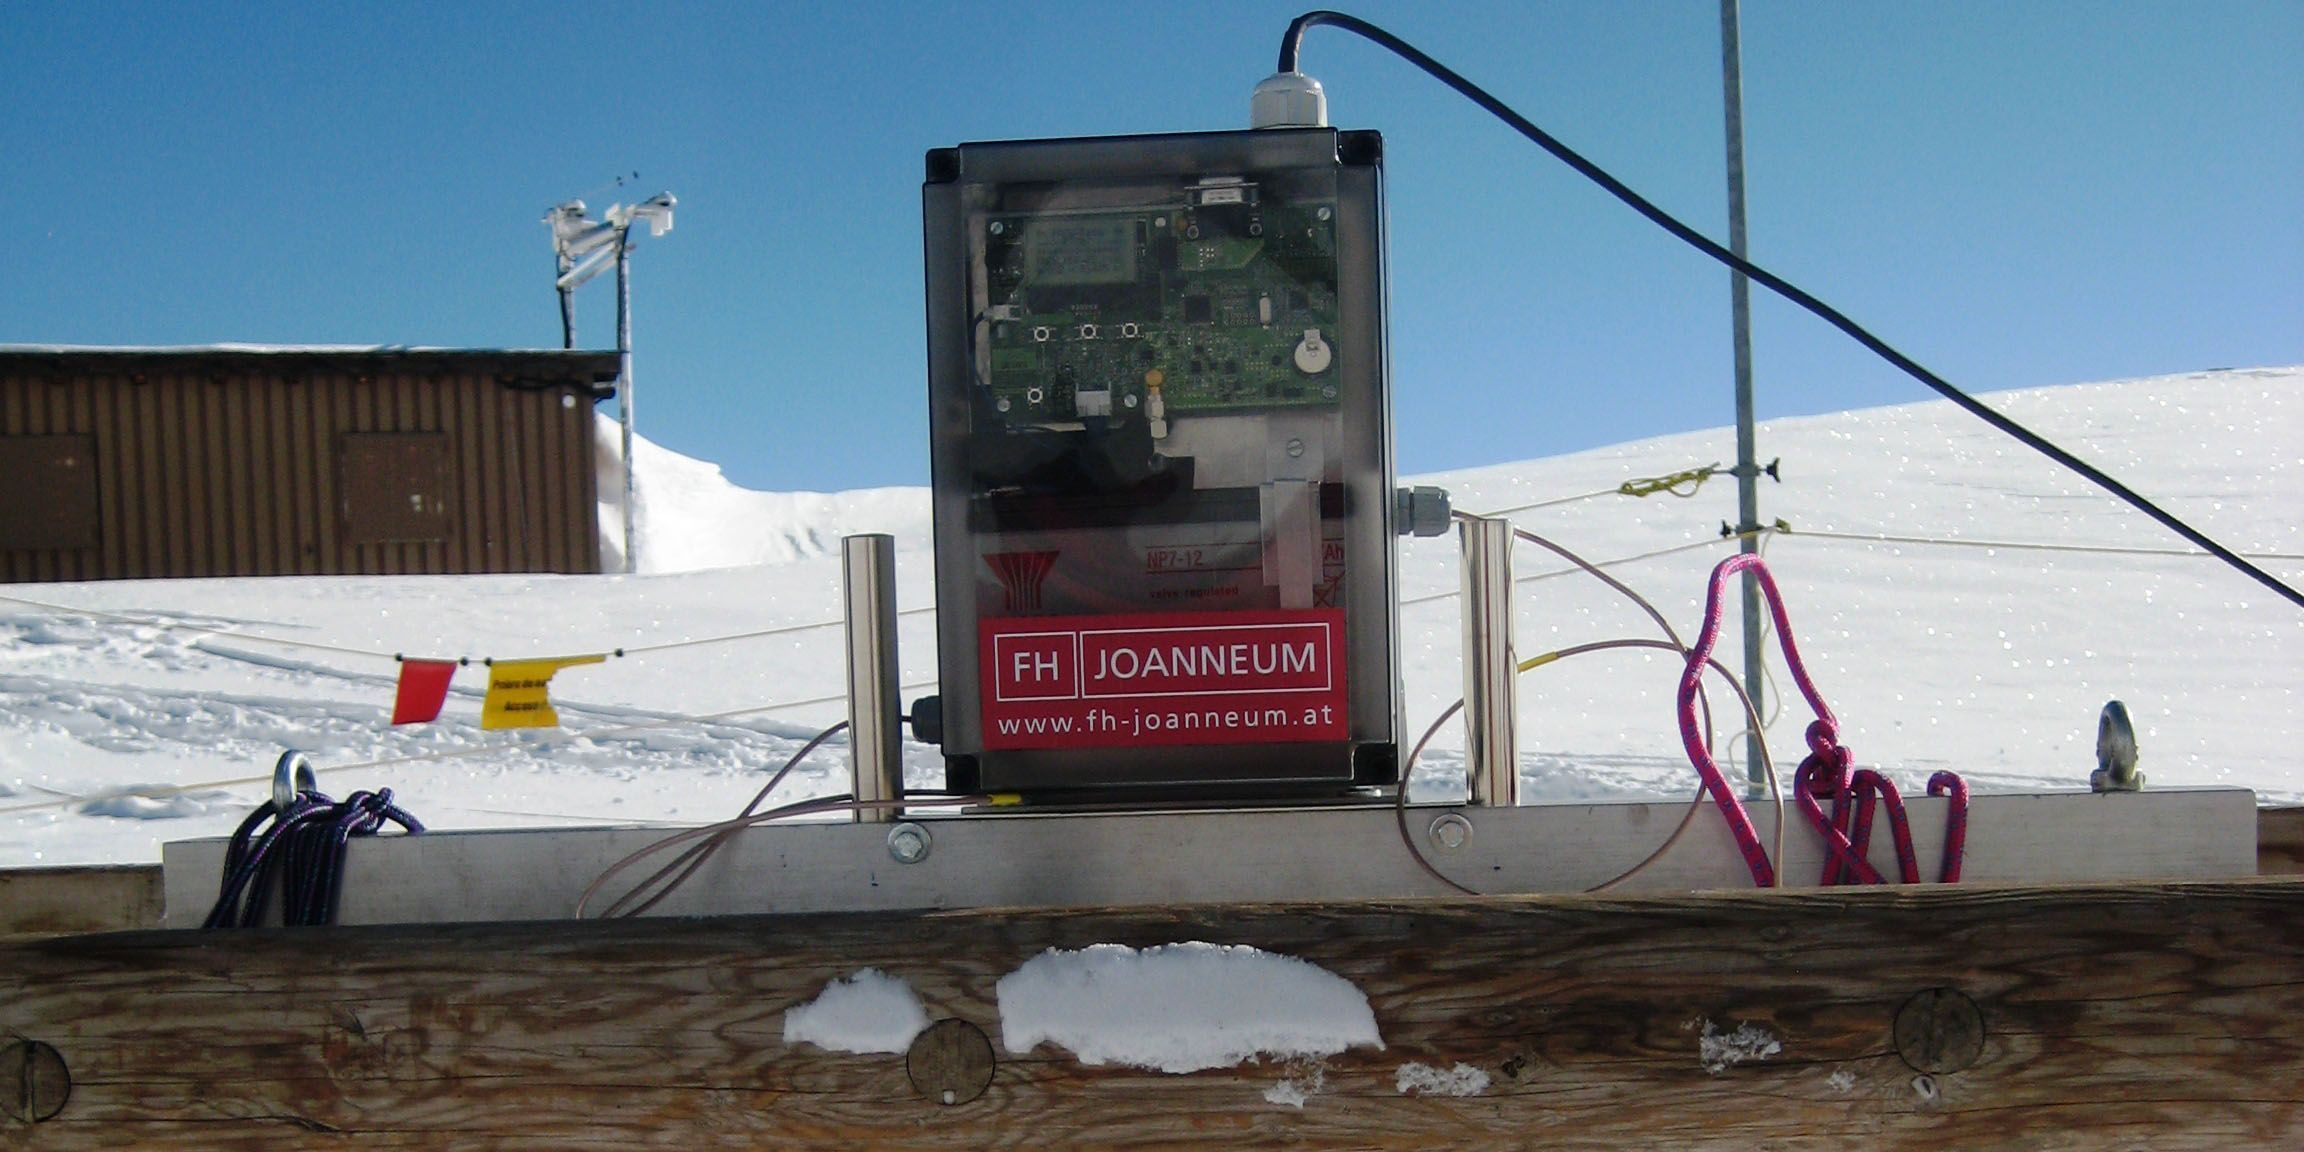 A radar system is used to monitor the snow.